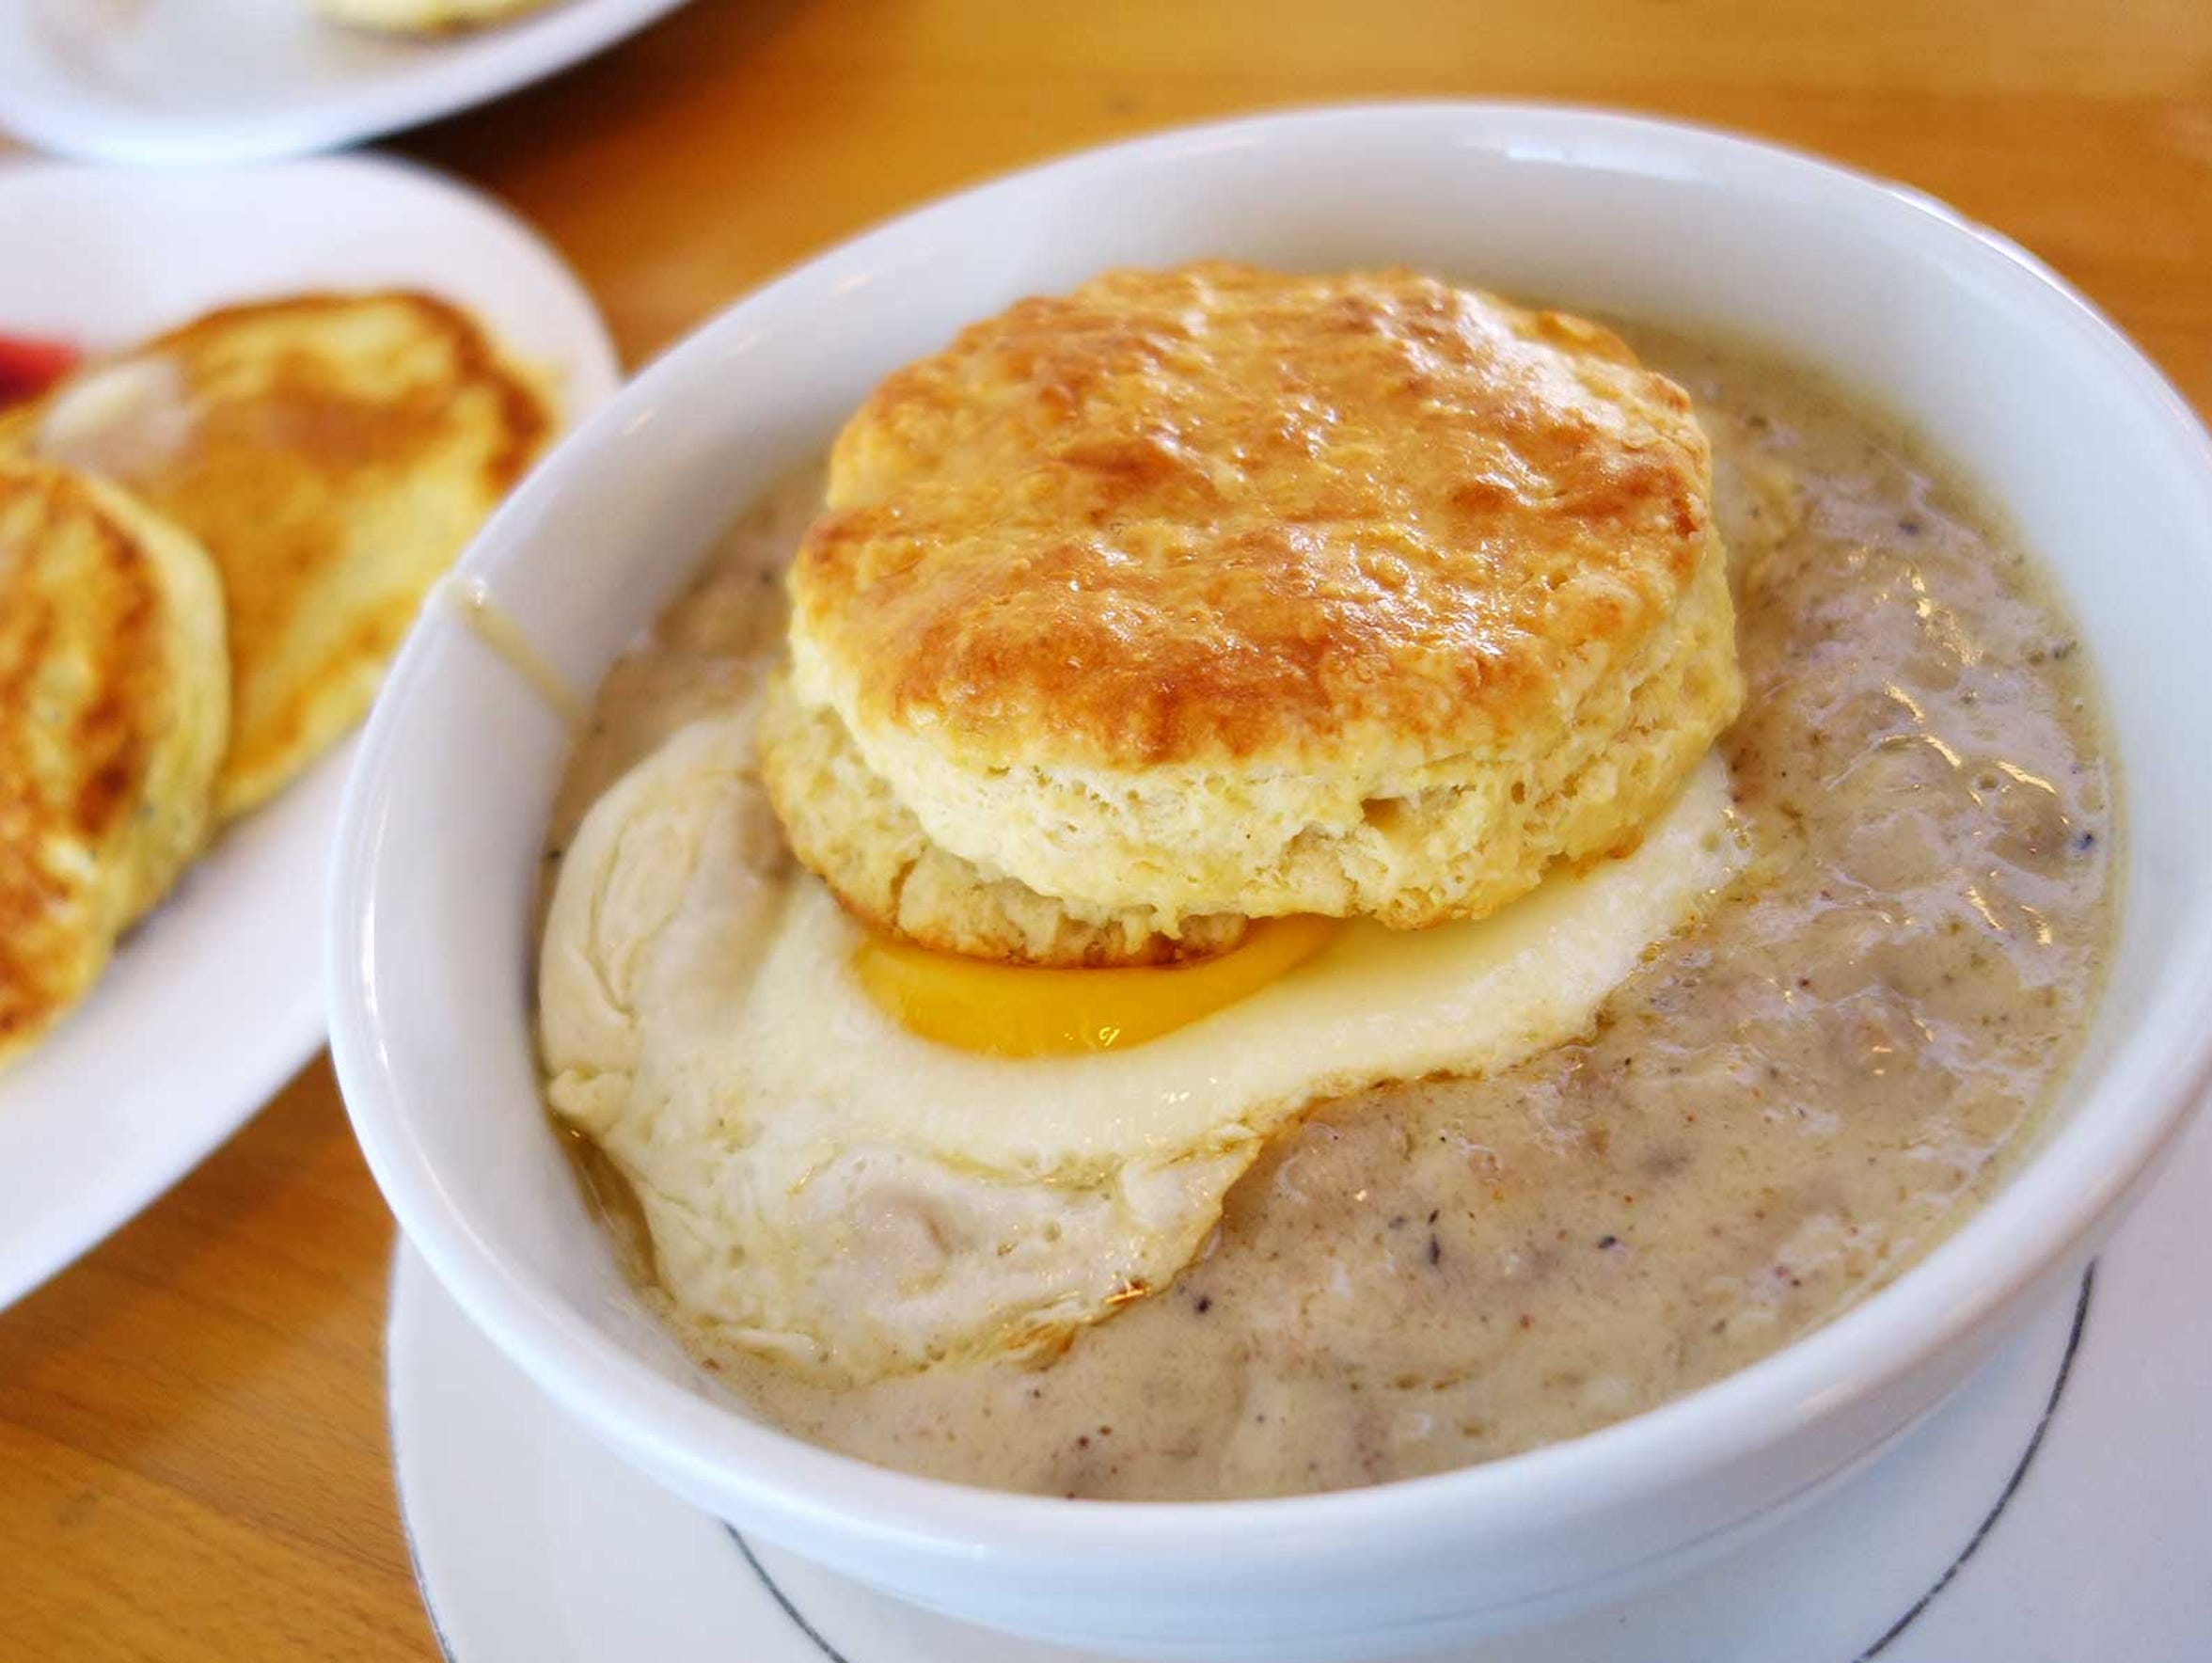 Biscuits and gravy at Ollie Vaughn's.